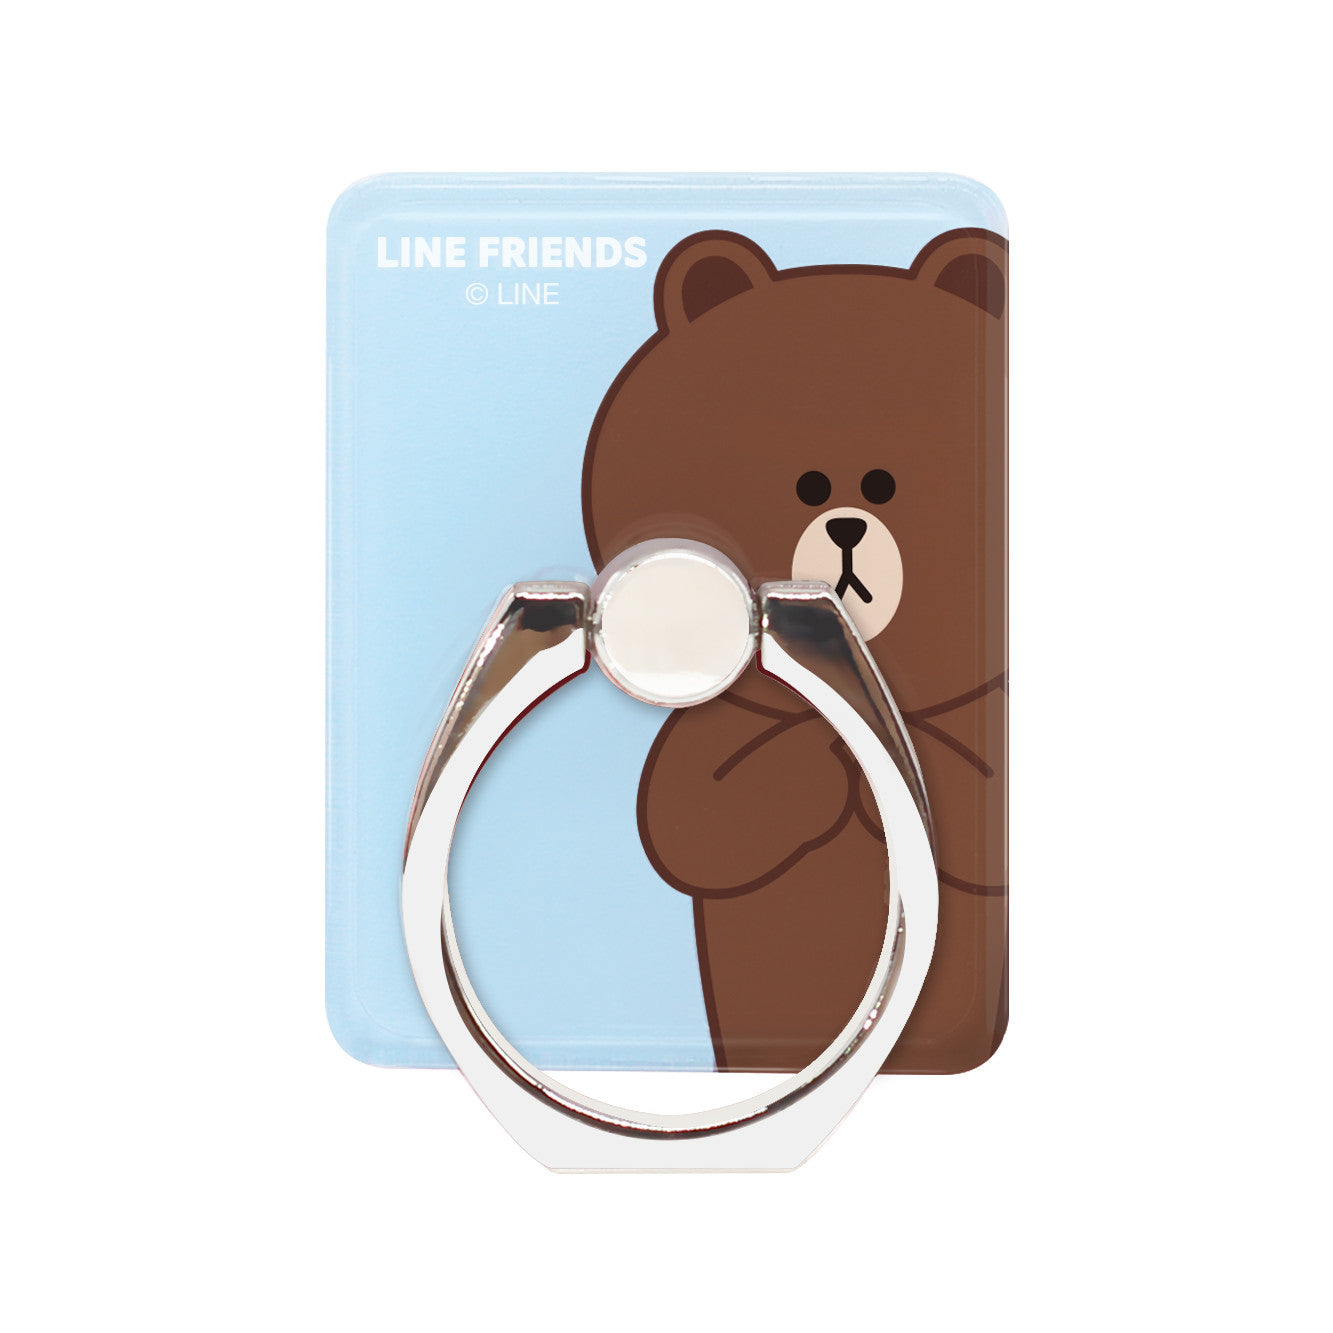 GARMMA Line Friends 360° Rotating Anti-drop Finger Ring Grip Phone Holder